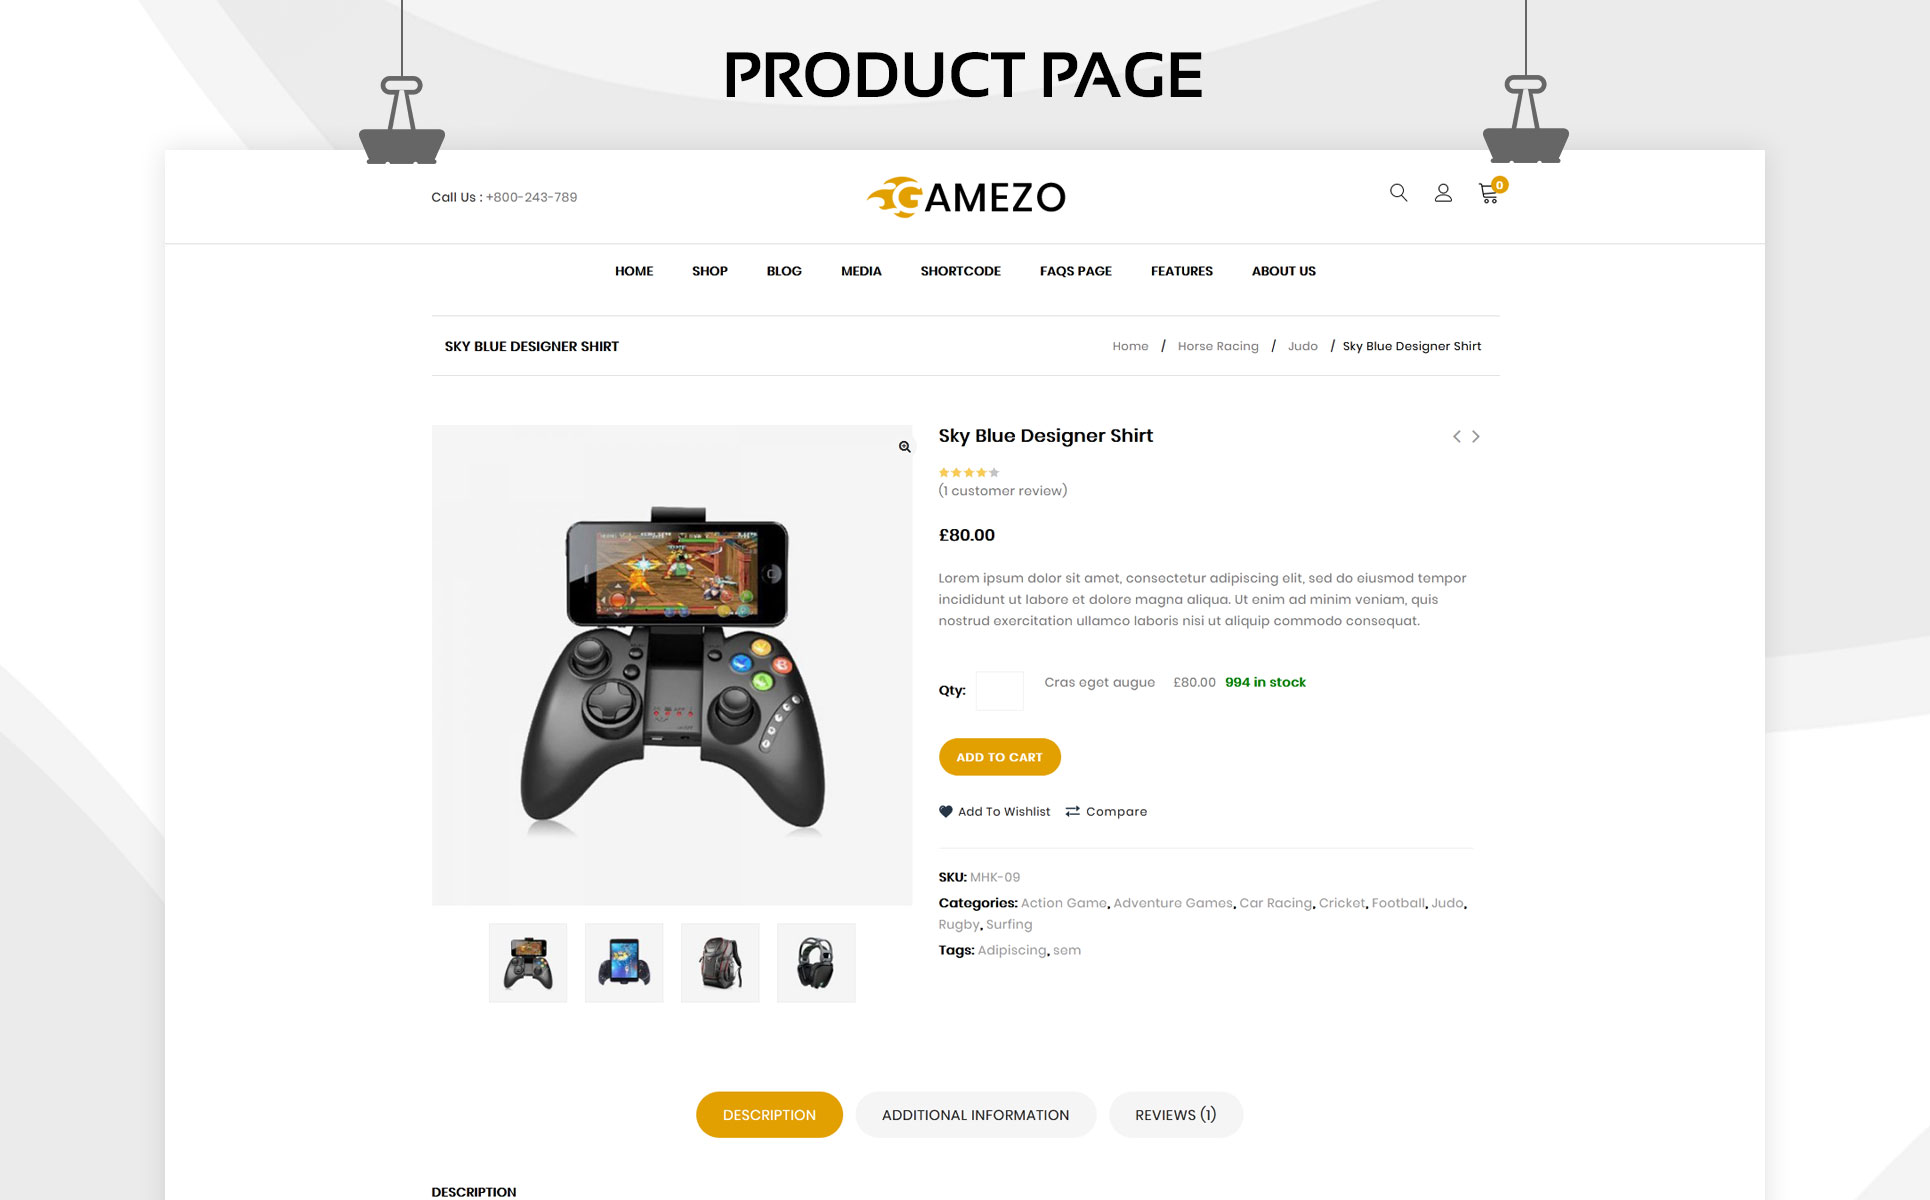 Gamezo - The Branded Gaming WooCommerce Theme